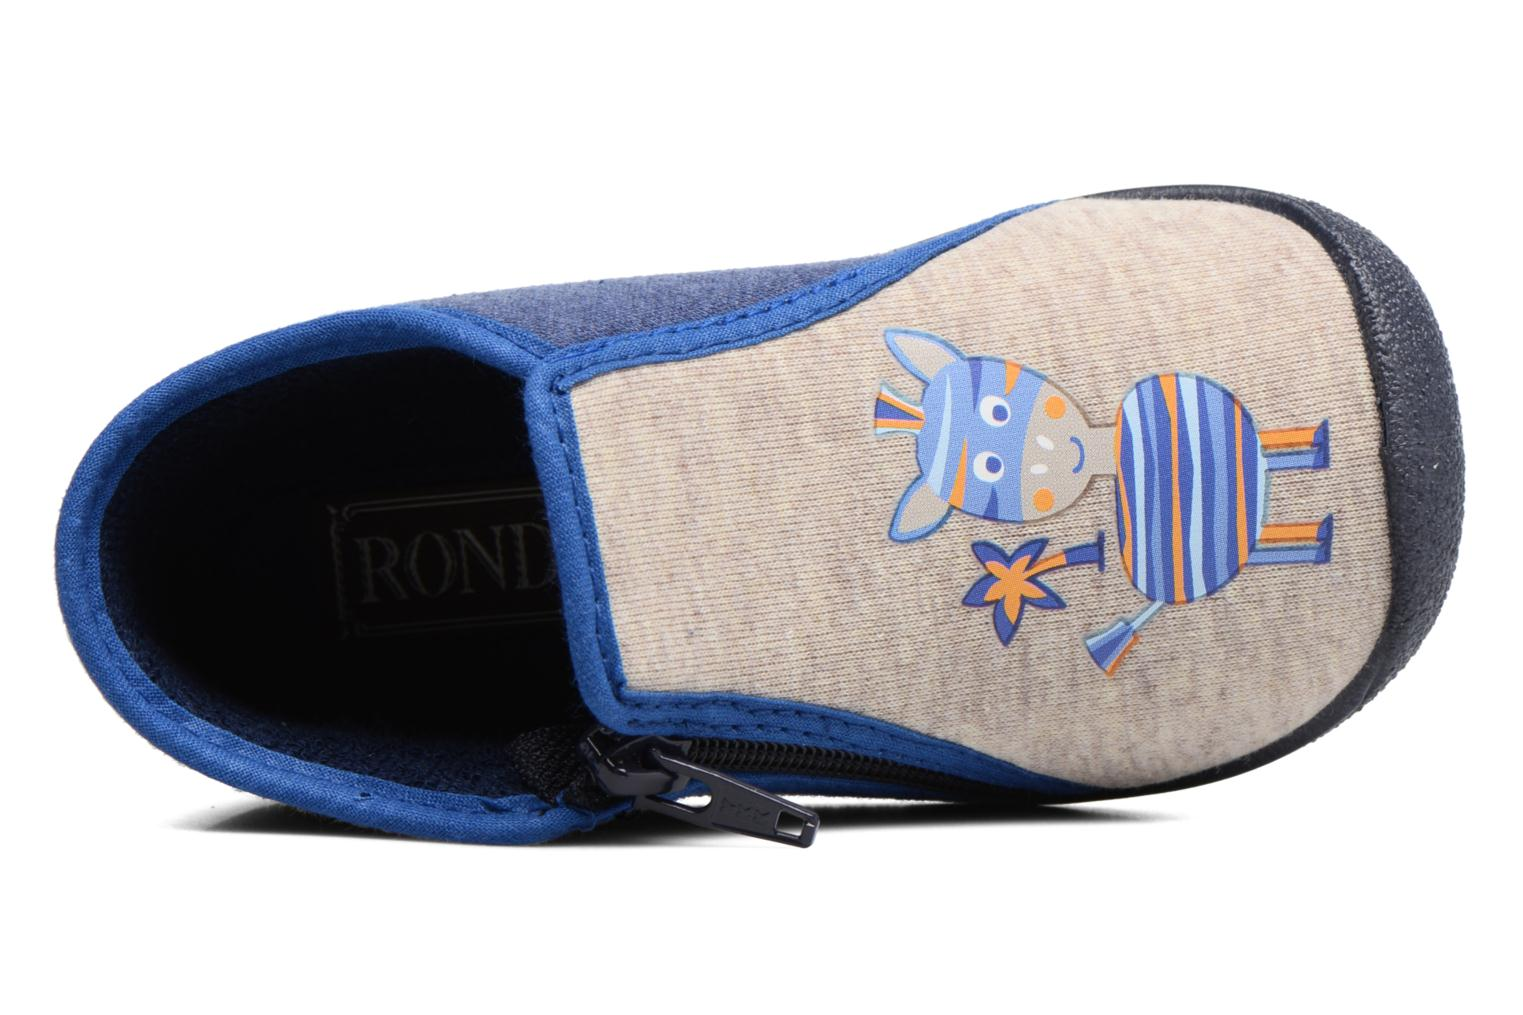 Chaussons Rondinaud GESSY Multicolore vue gauche